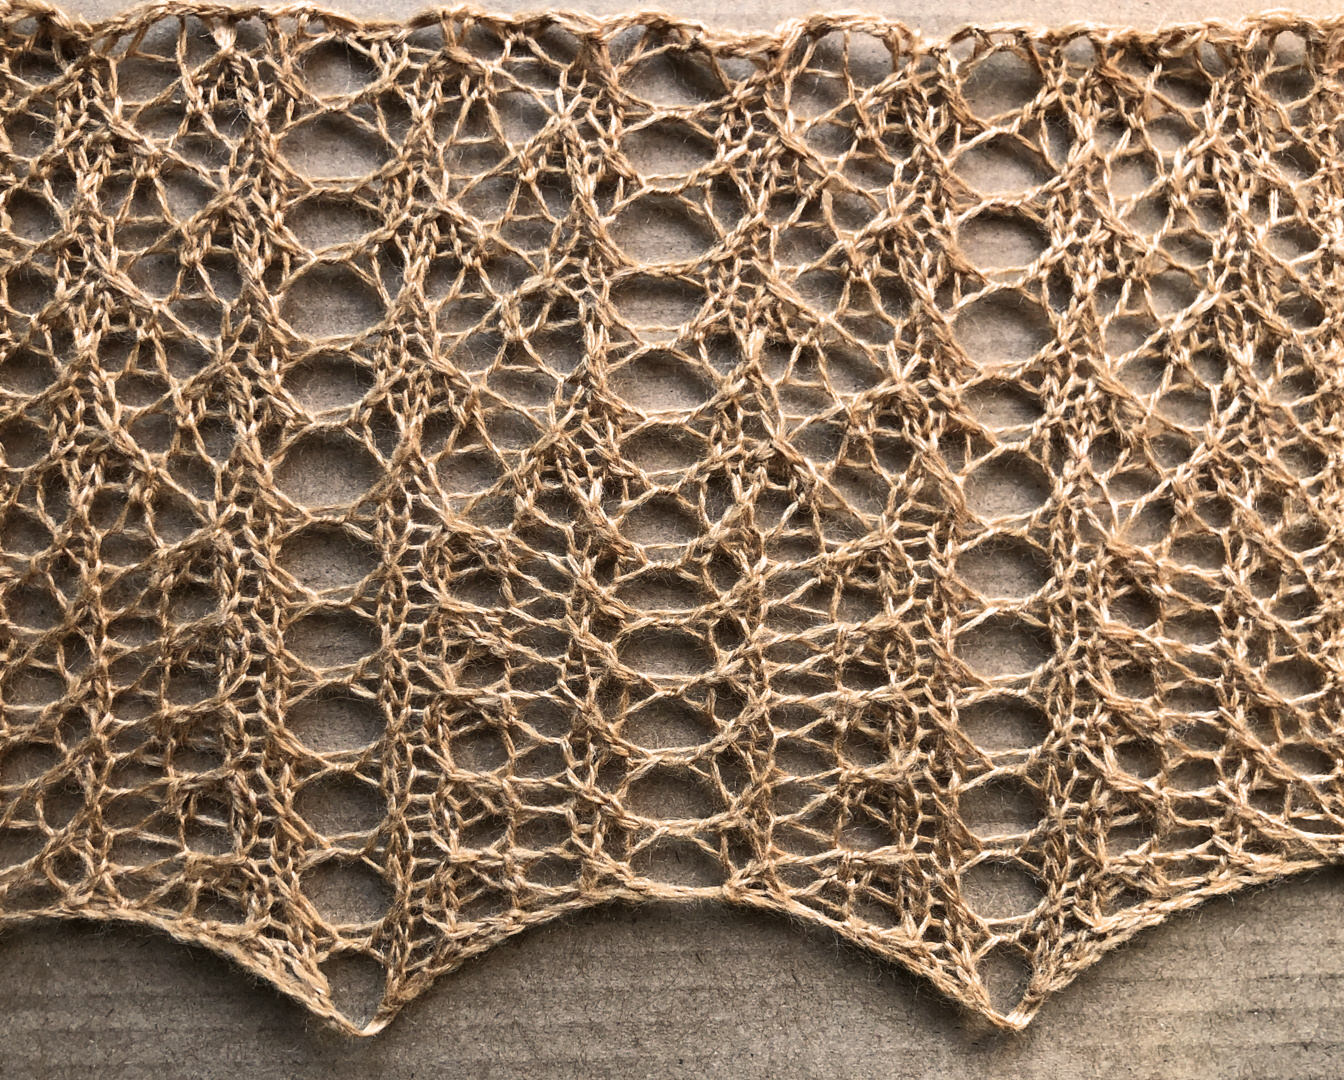 Dog: a free lace knitting stitch pattern, by Naomi Parkhurst